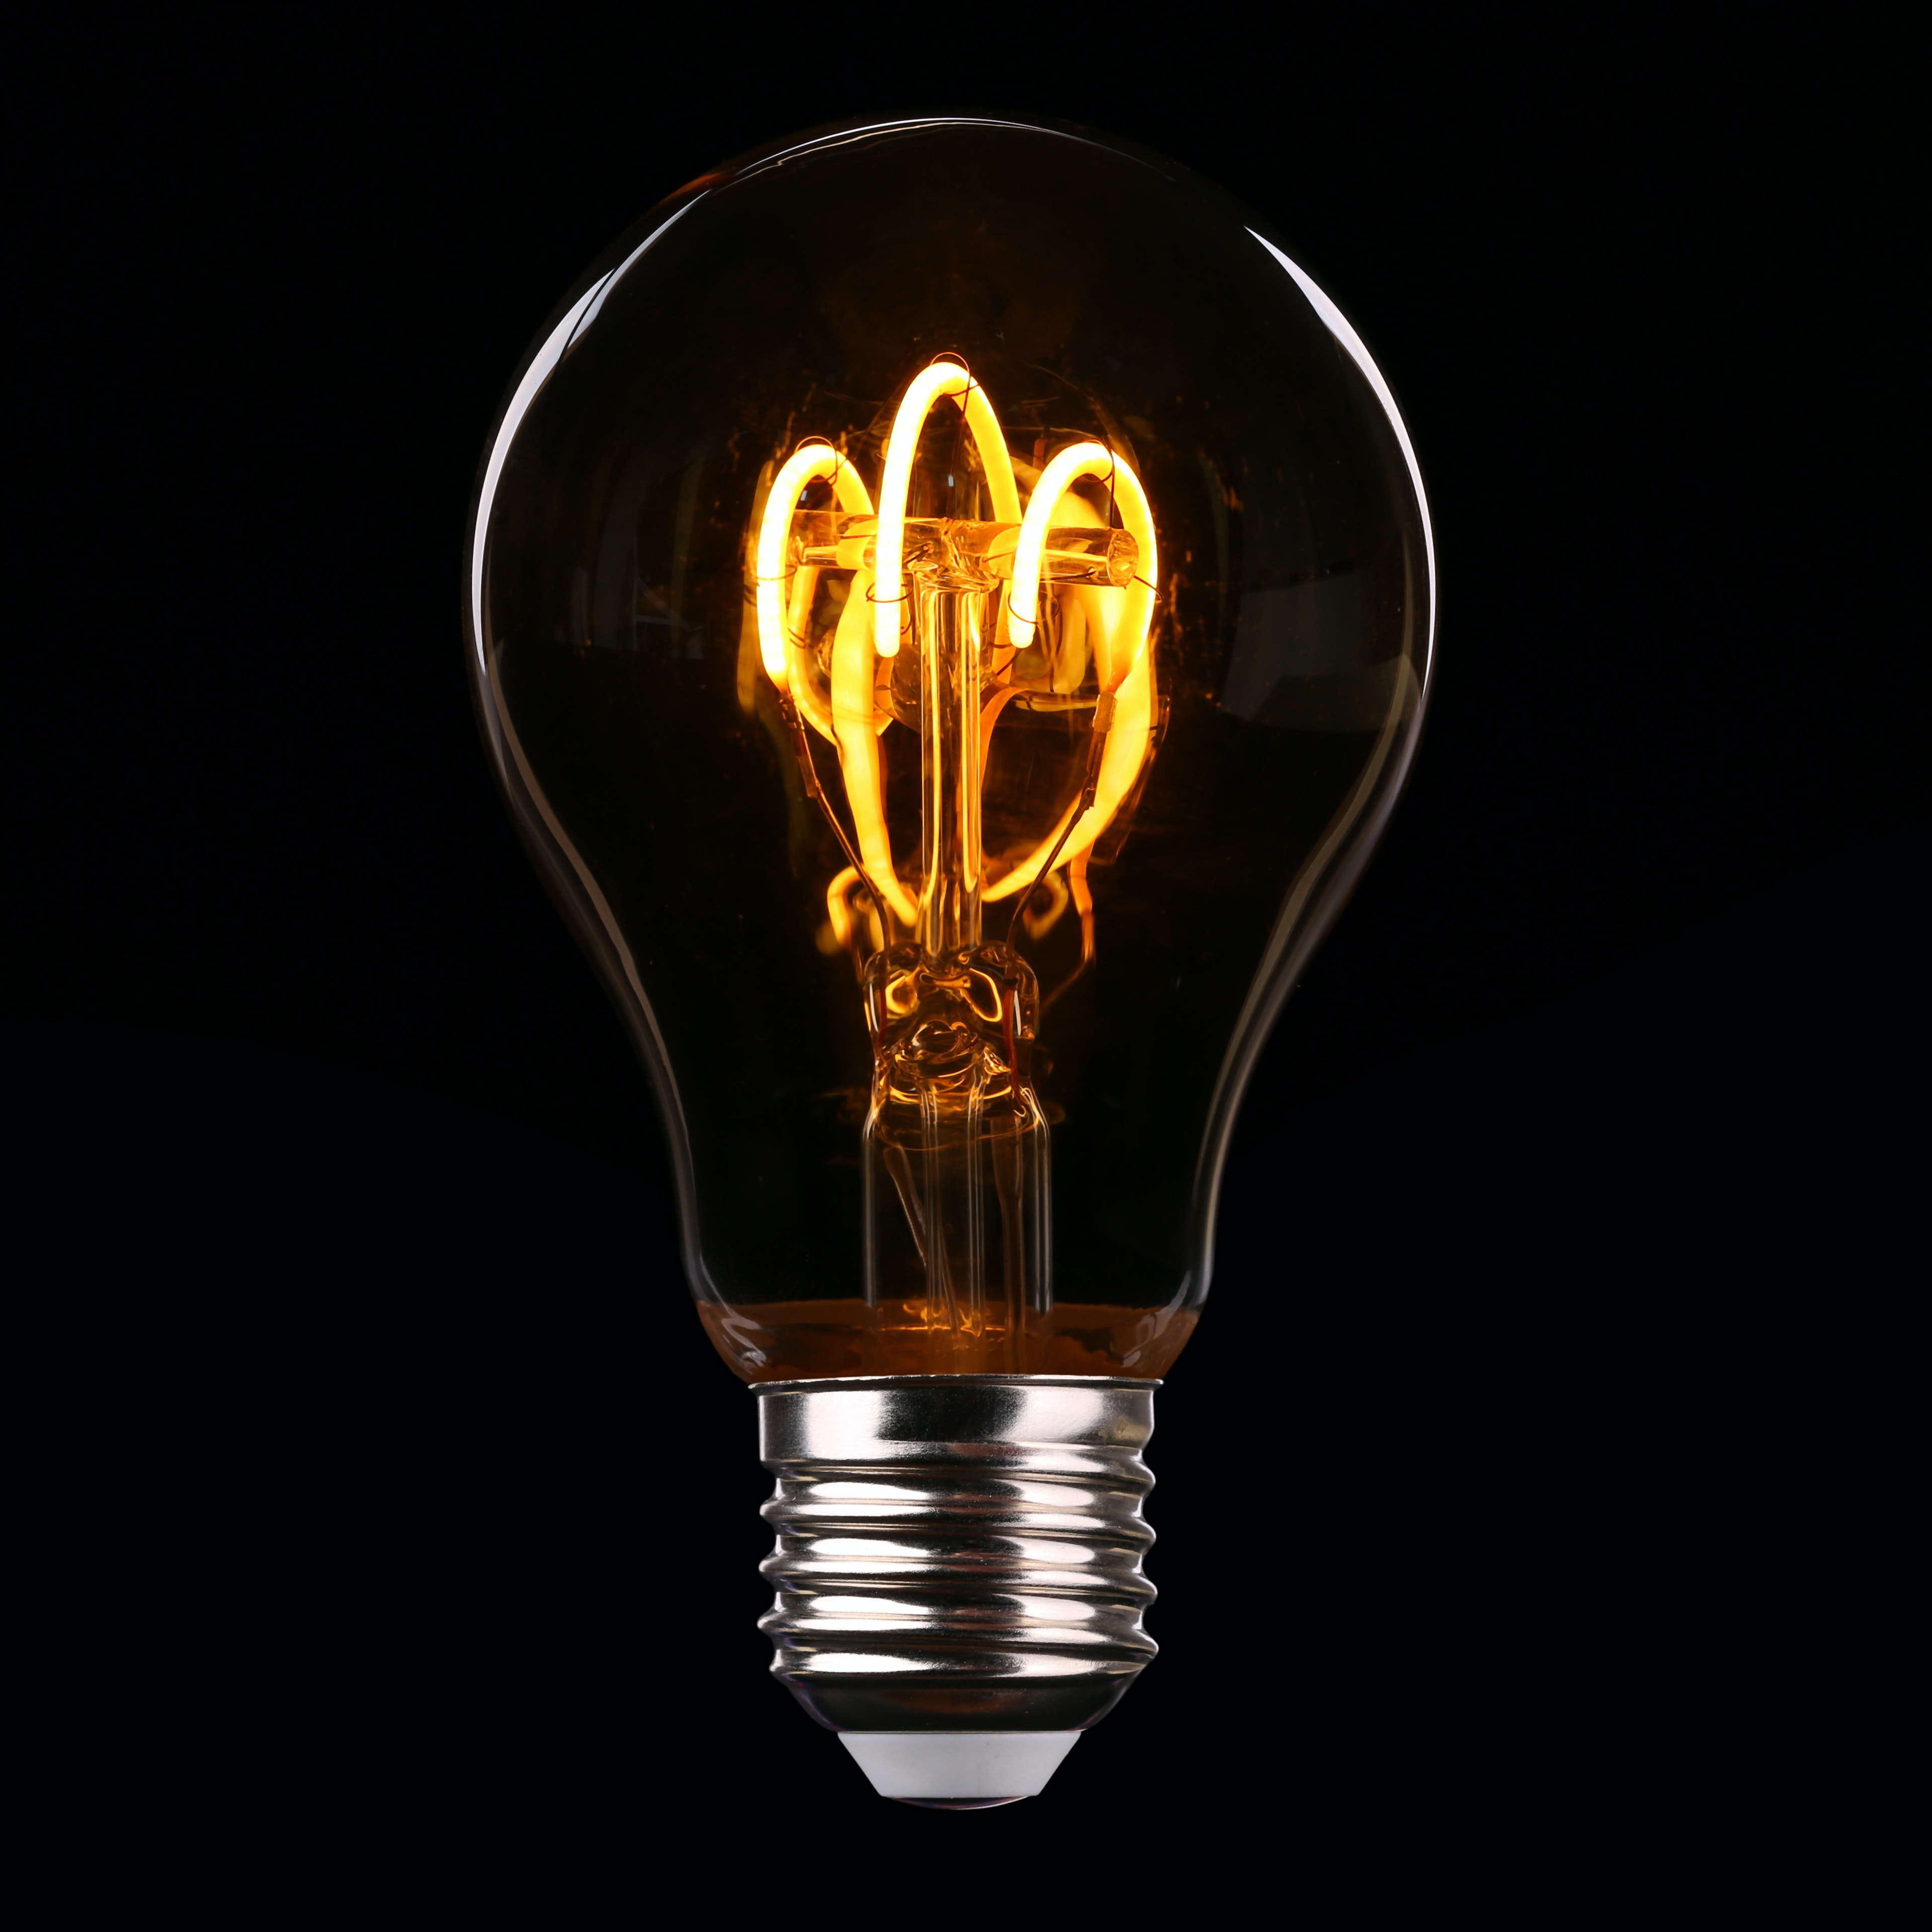 183 beautiful bulb pictures pexels free stock photos